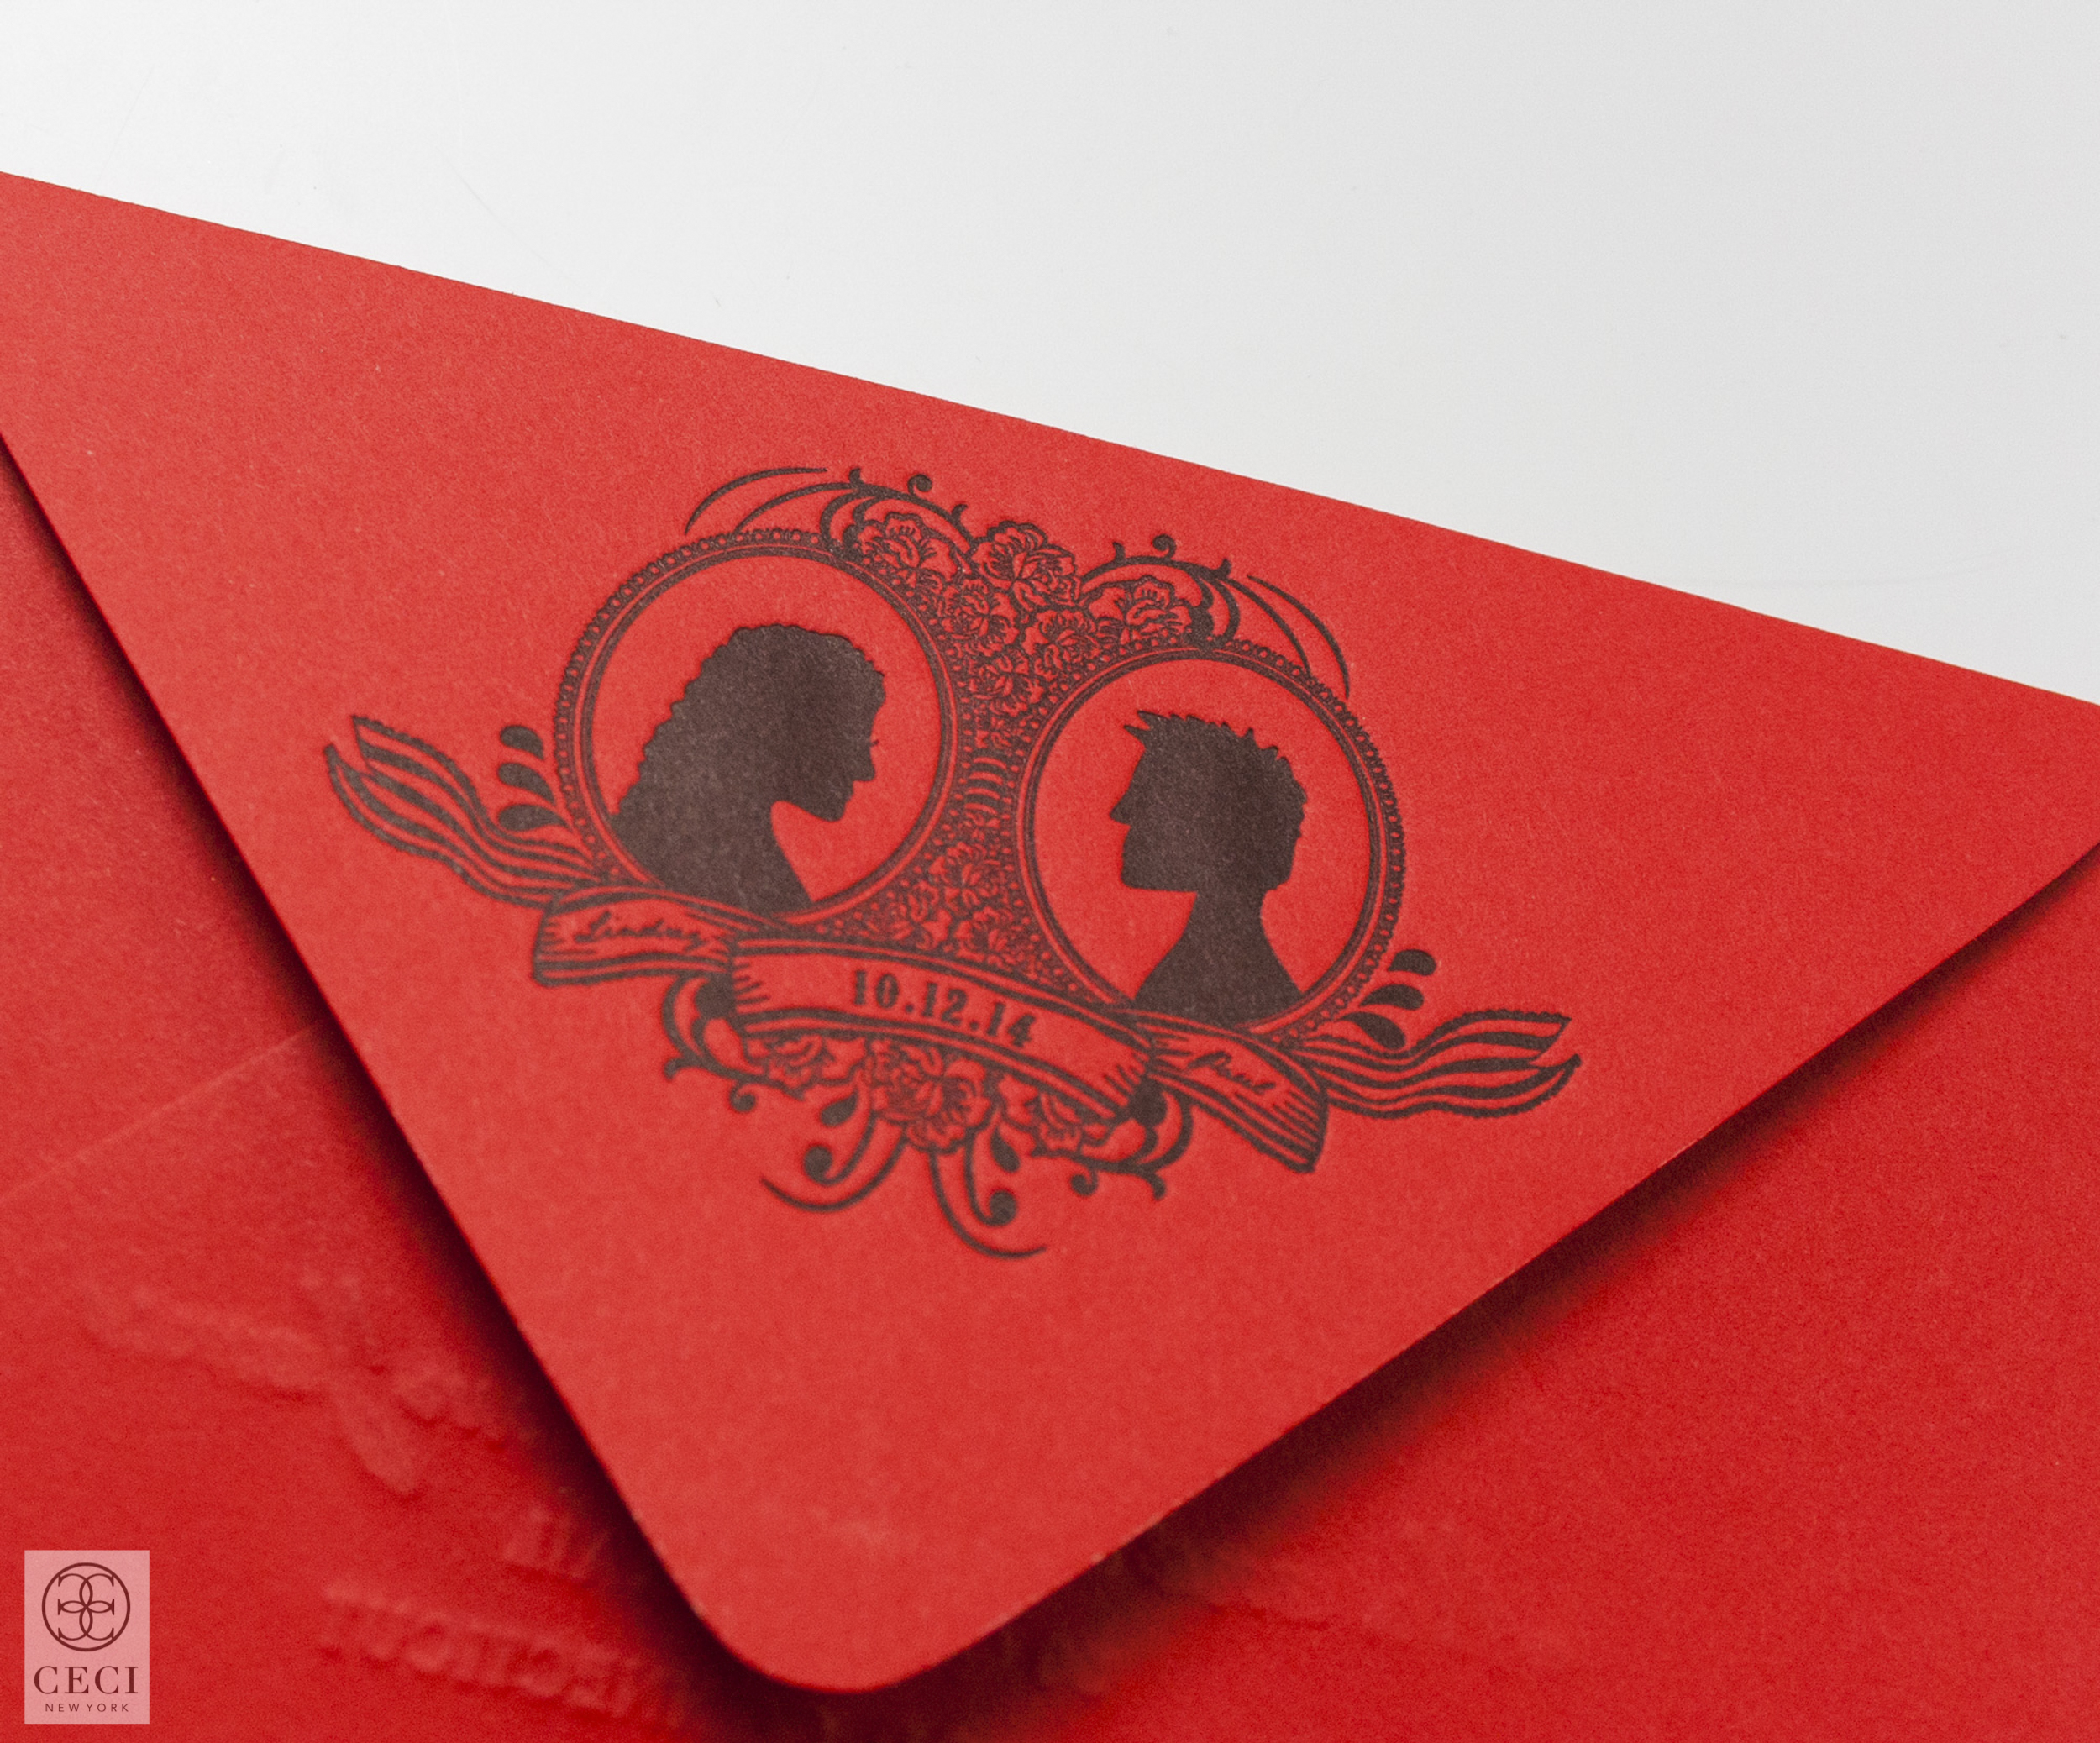 ceci_new_york_wedding_invitation_design_black_red_dramatic_macabre_statement-12.jpg